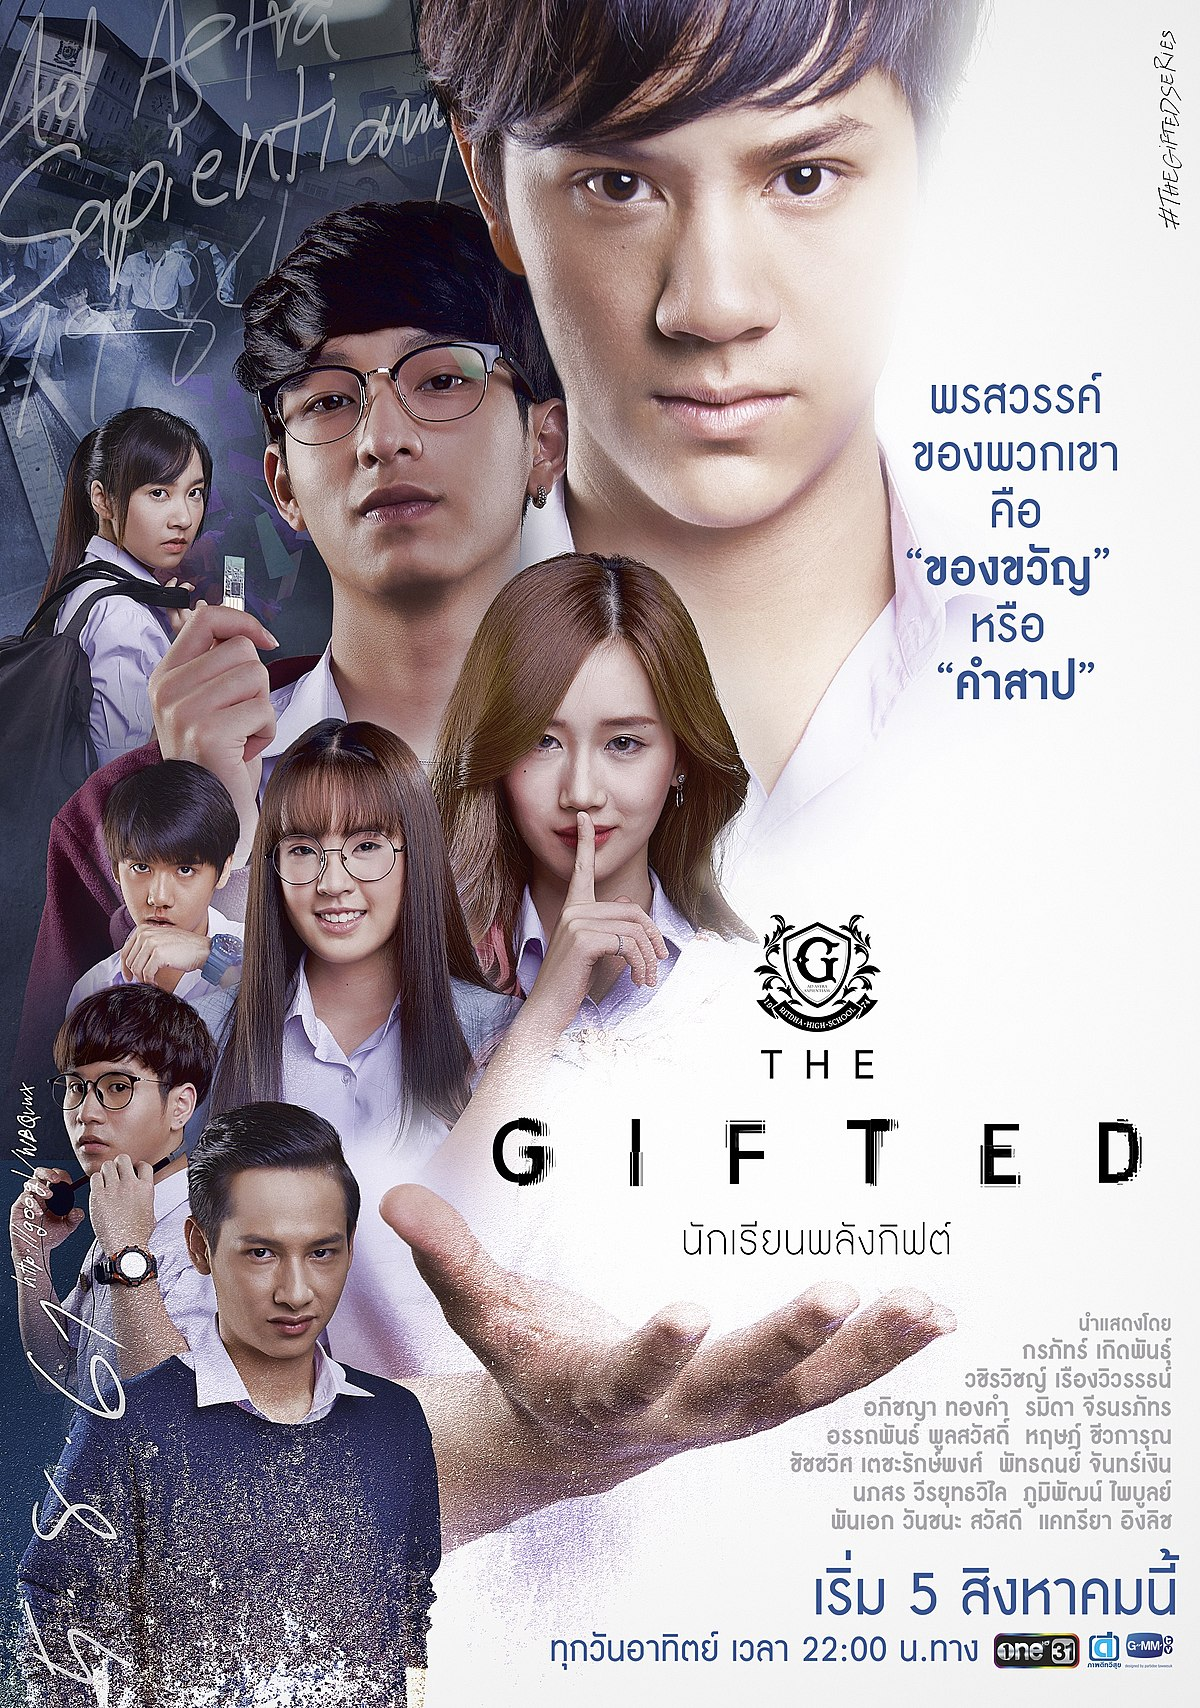 The Gifted الموهوبين